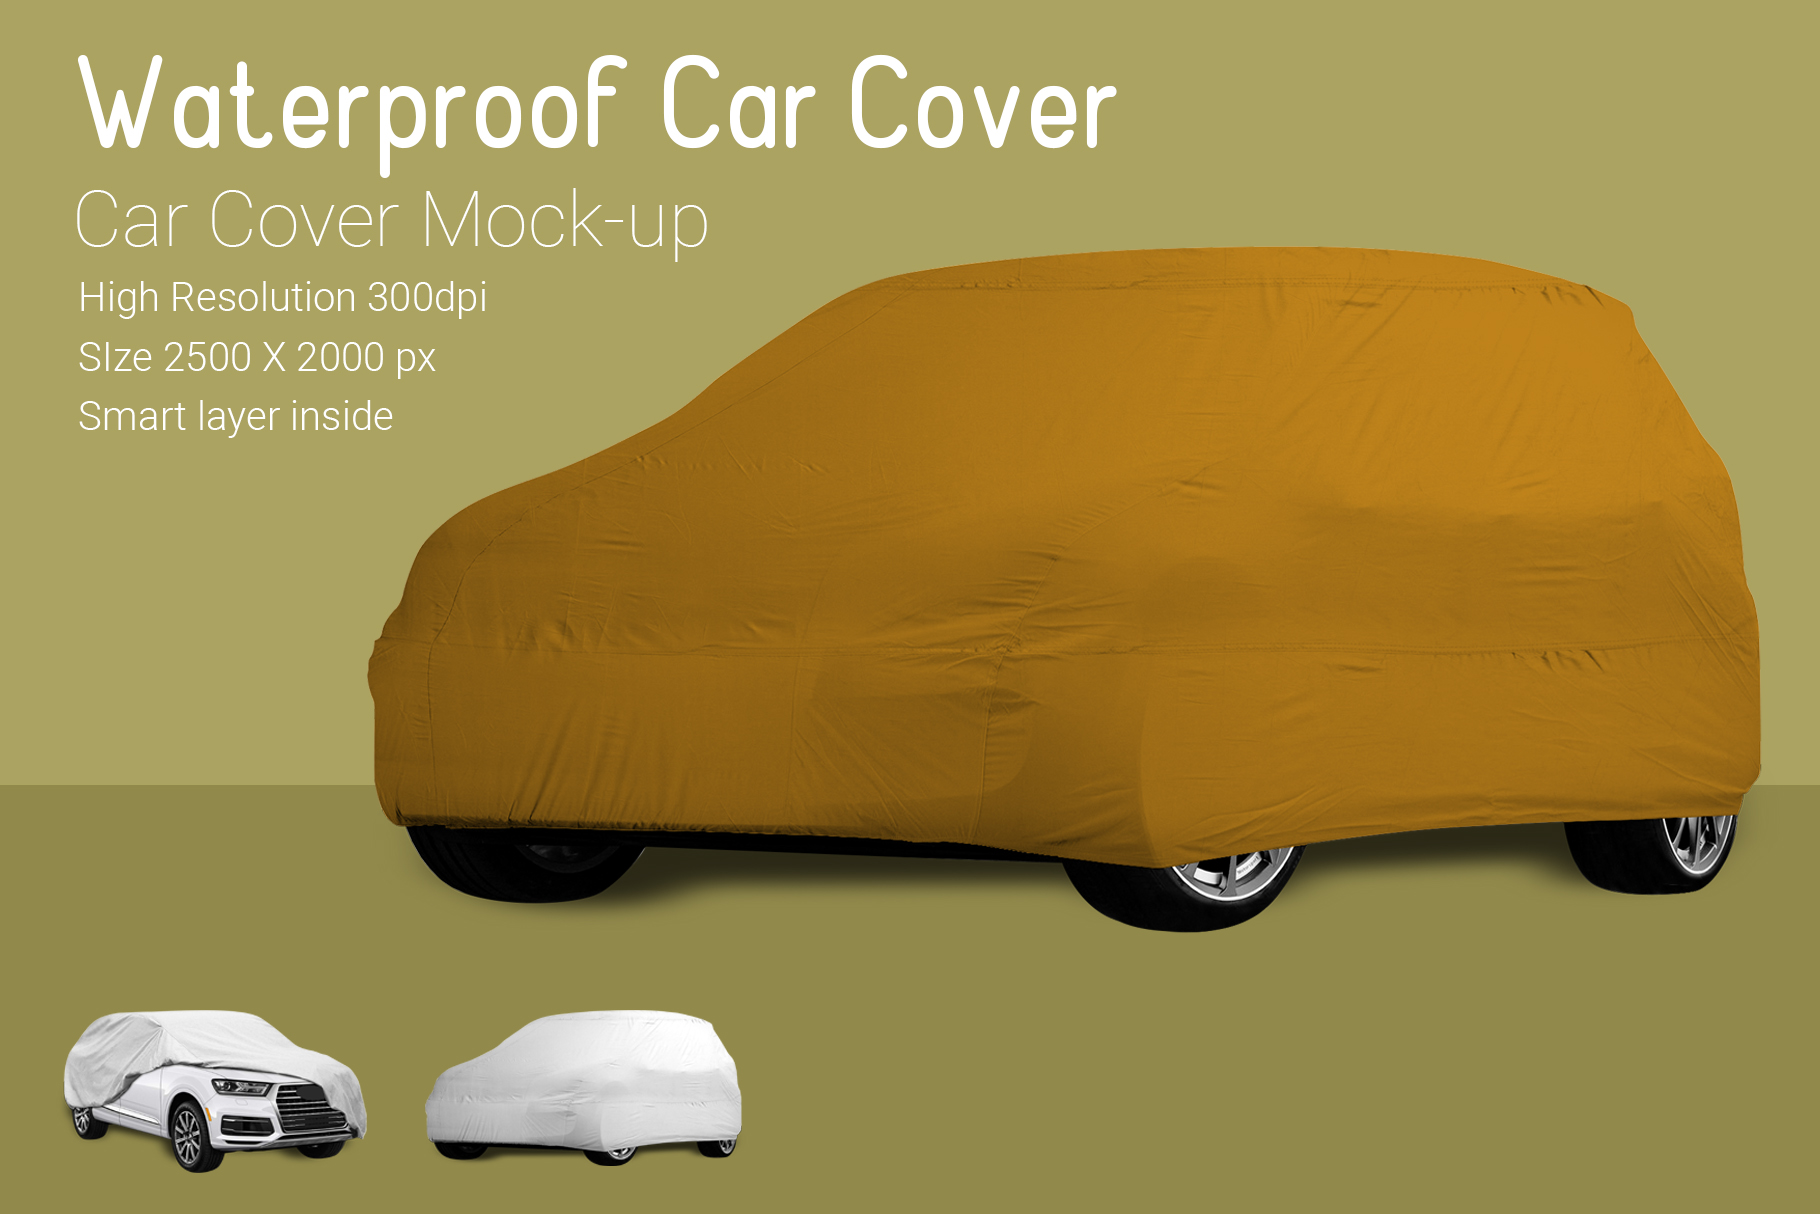 Car Cover Mock-Up example image 4